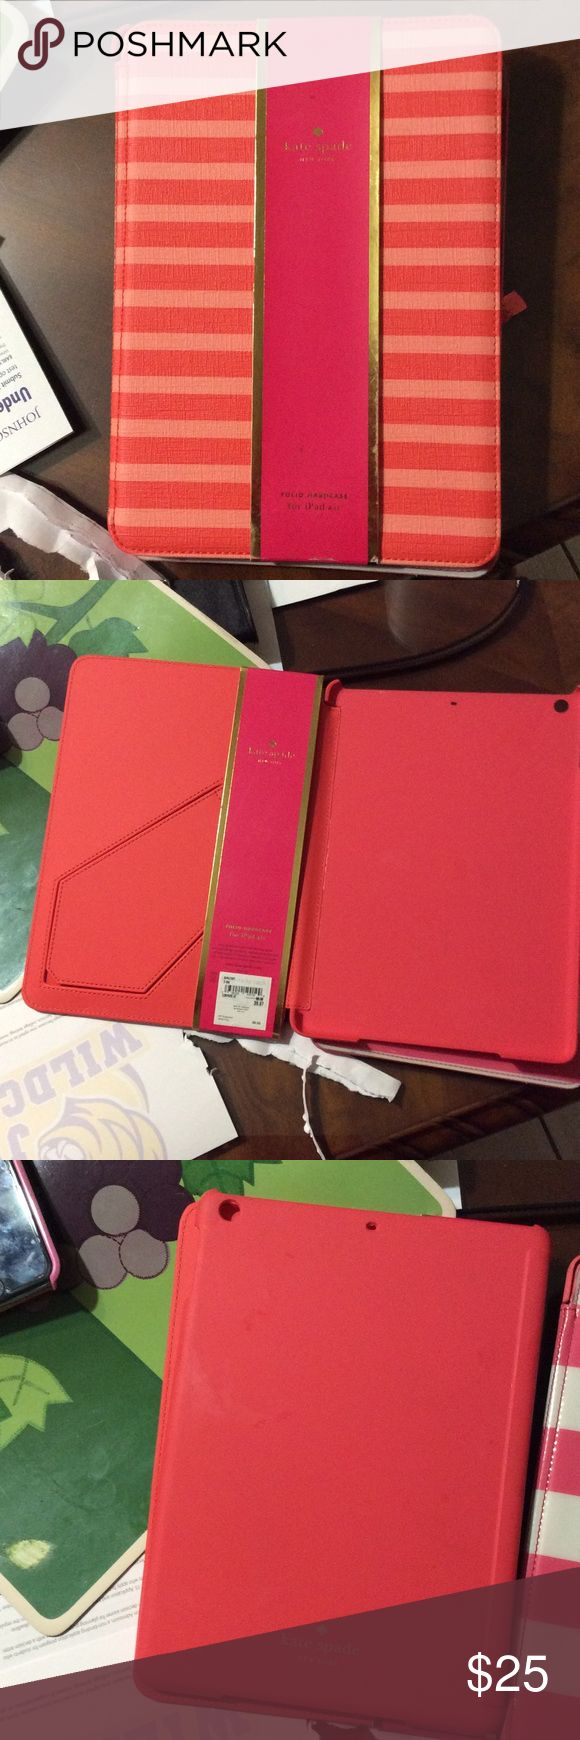 Kate spade I Pad air cases Brand new and the other one is the same condition but without the price tag kate spade Accessories Tablet Cases